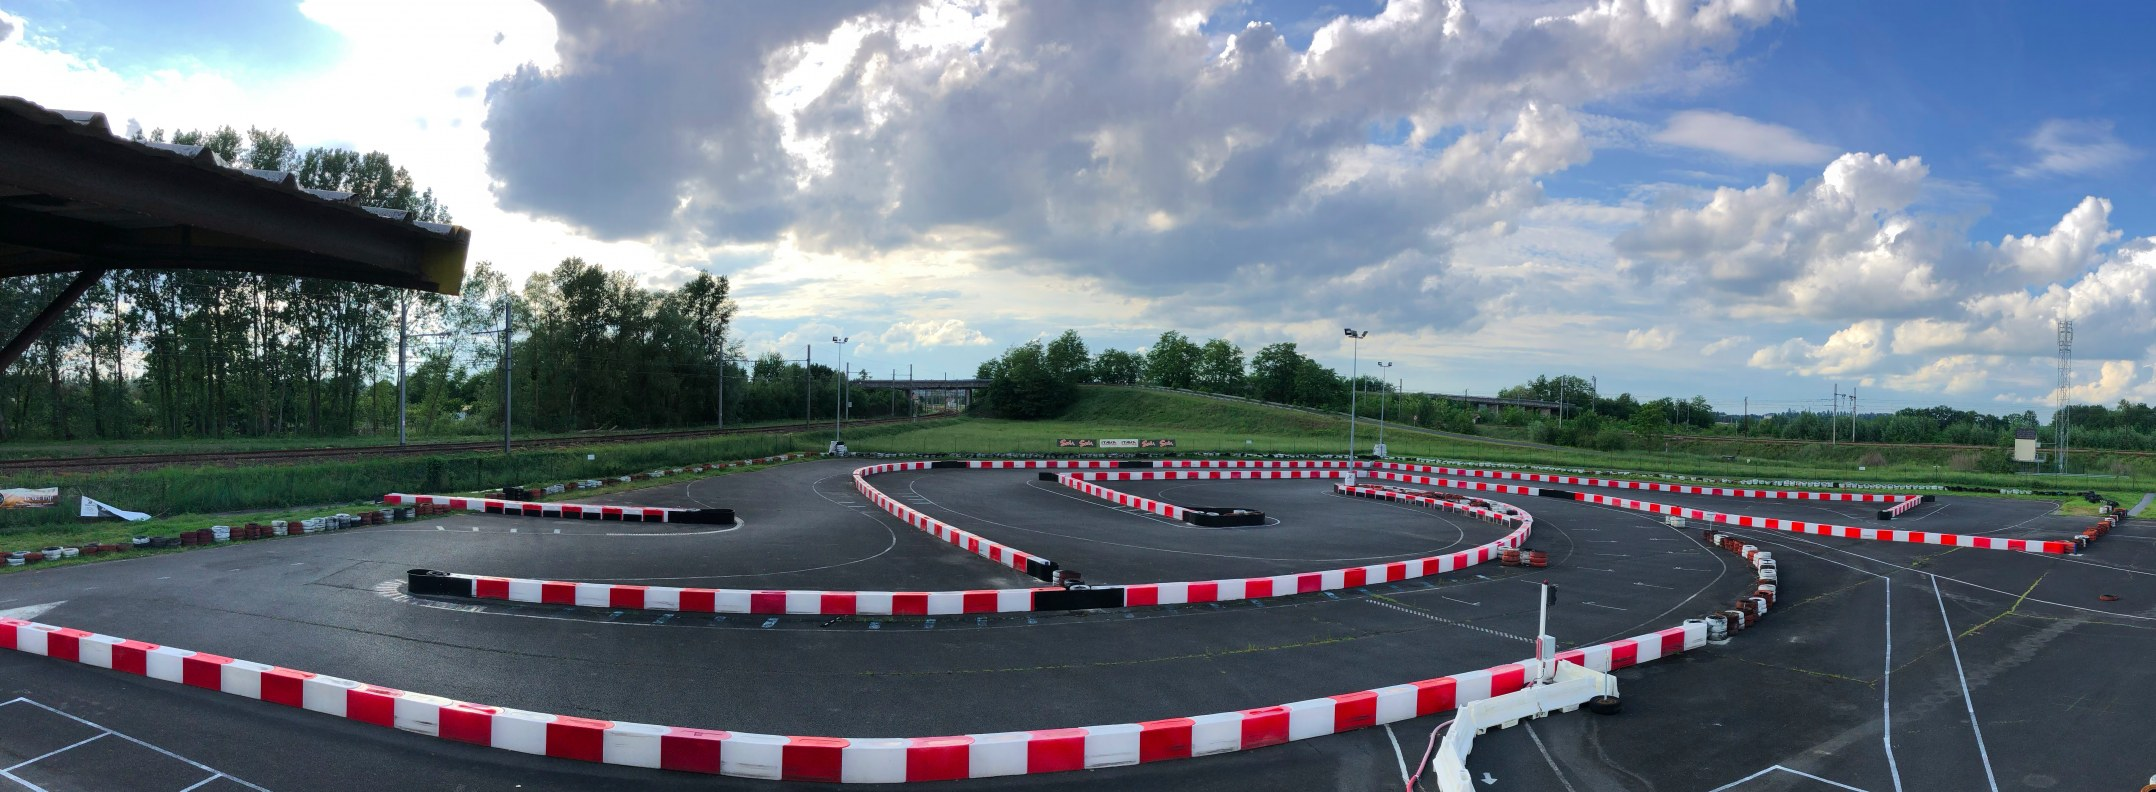 KARTING CENTER TOURS -LA PISTE